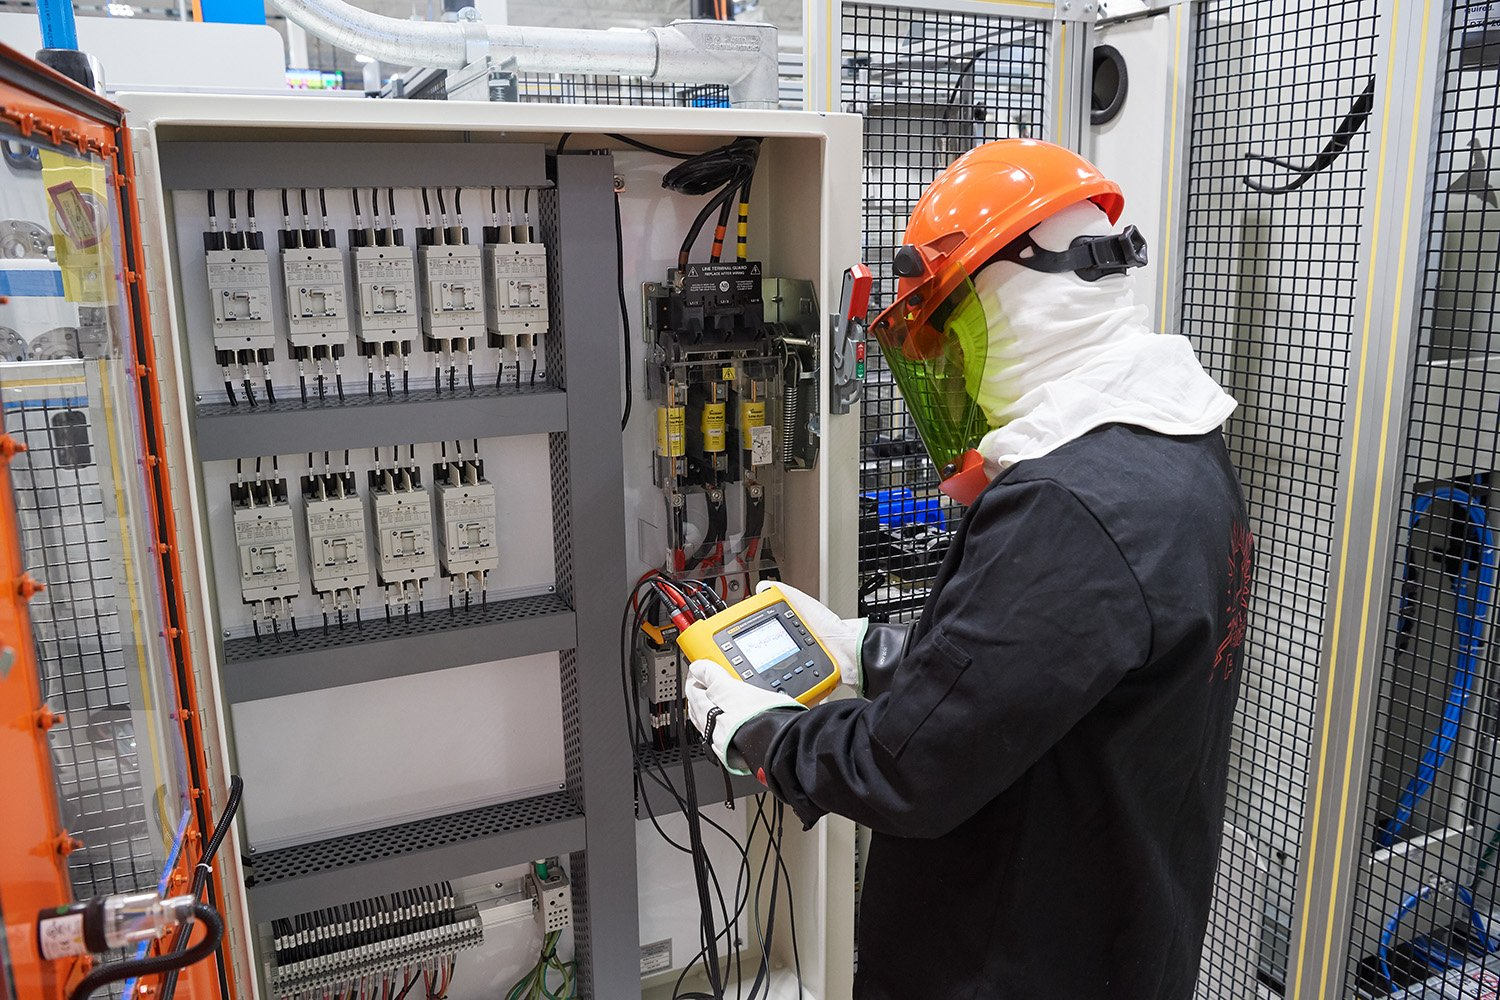 Dana technician sets up a power monitor within an electrical panel.